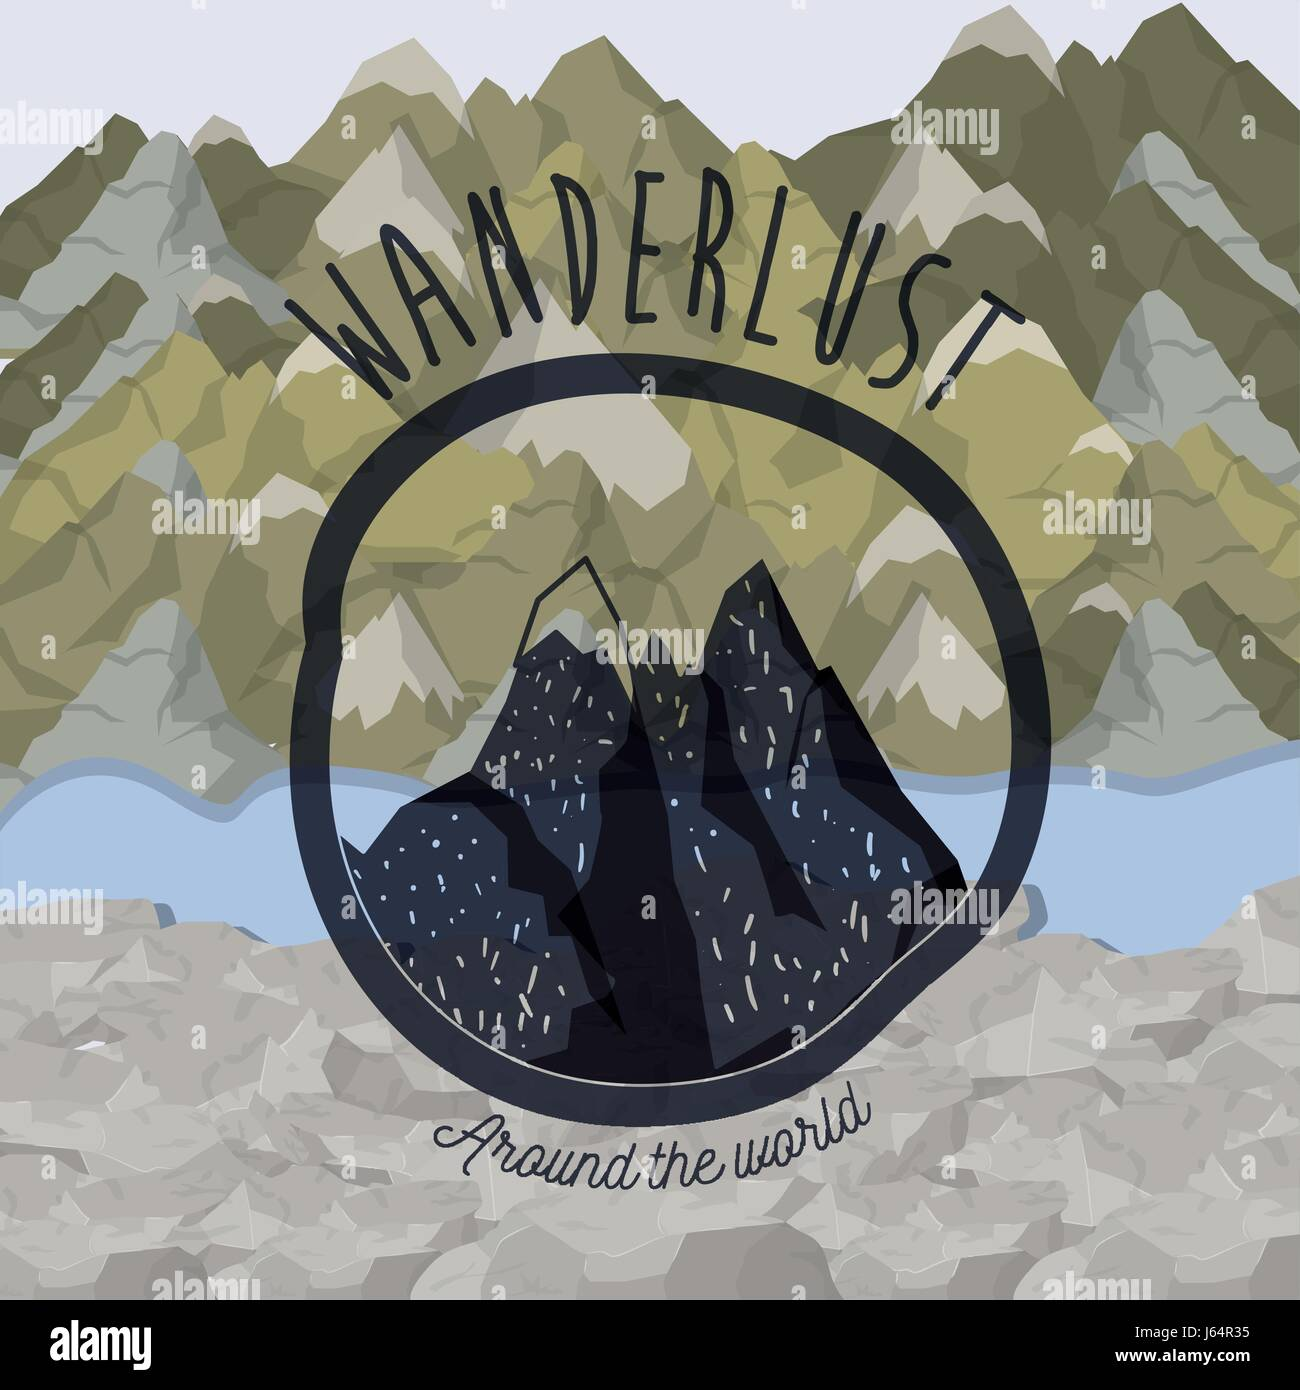 background blur mountains scenary with wanderlust logo rocky mountains - Stock Vector